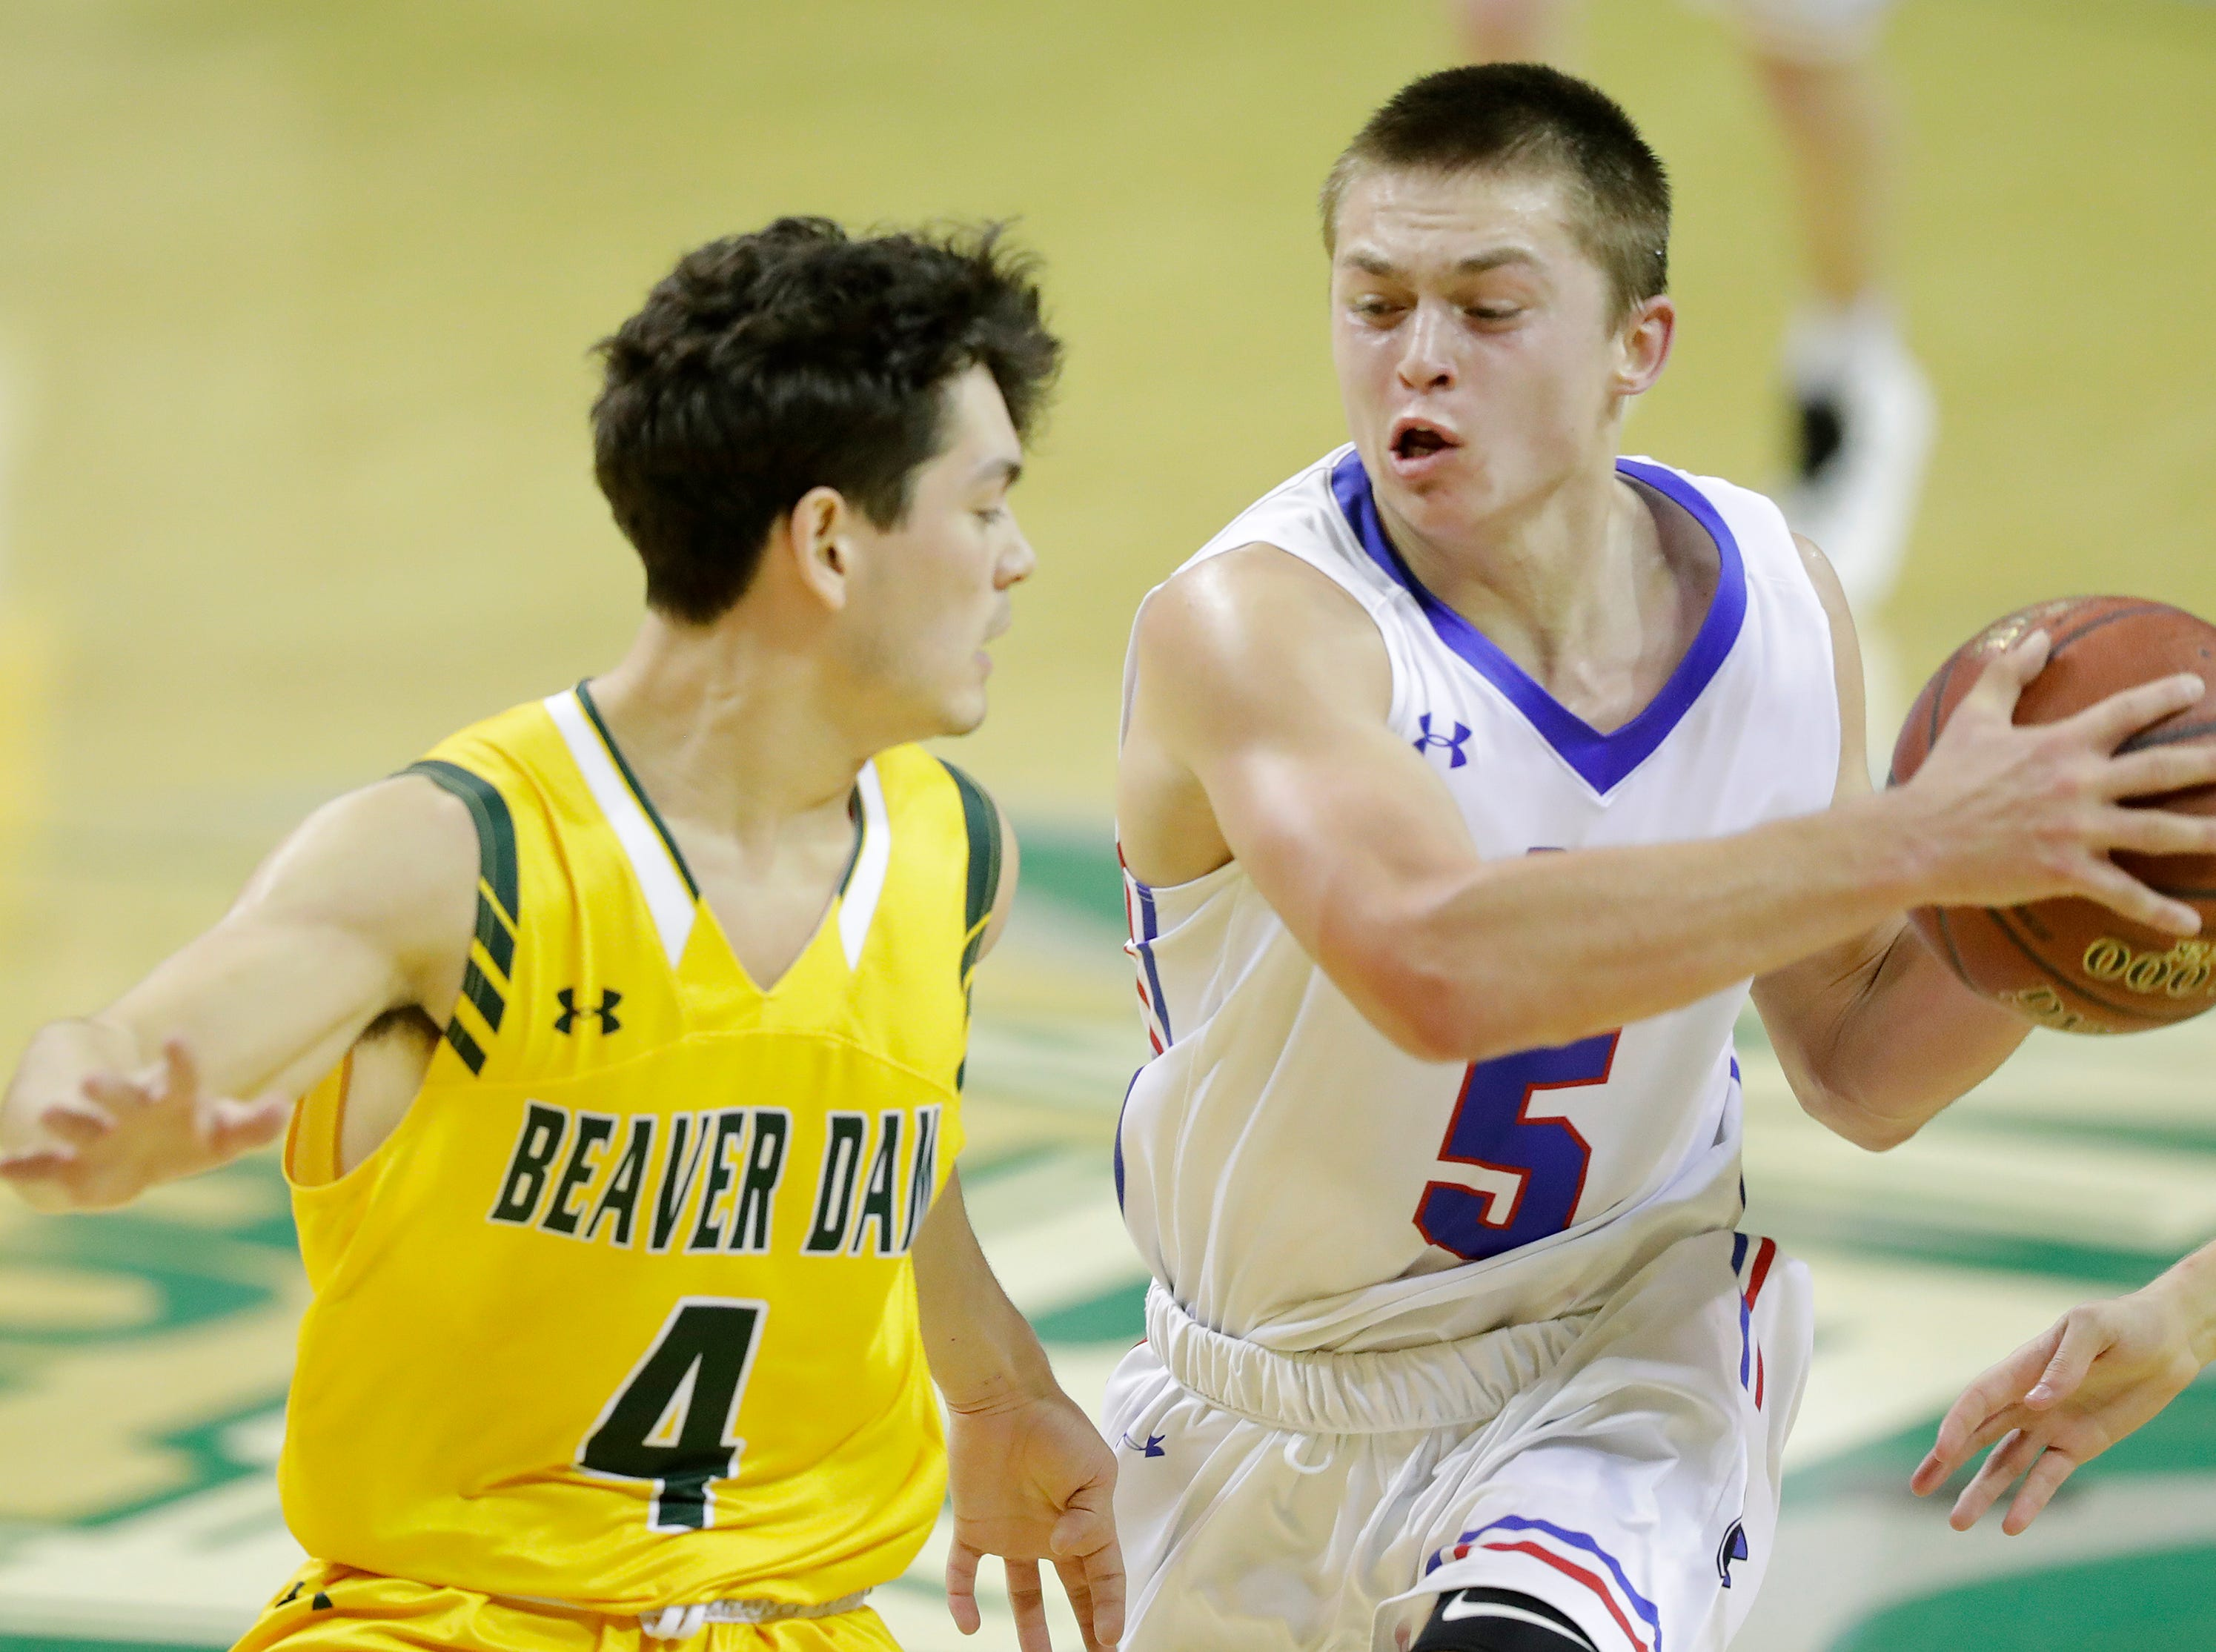 Merrill's Quinn Steckbauer (5) dribbles against Beaver Dam's Kendric Jimenez (4) at the Shawano Shootout at the Kress Center on Friday, December 28, 2018 in Green Bay, Wis.